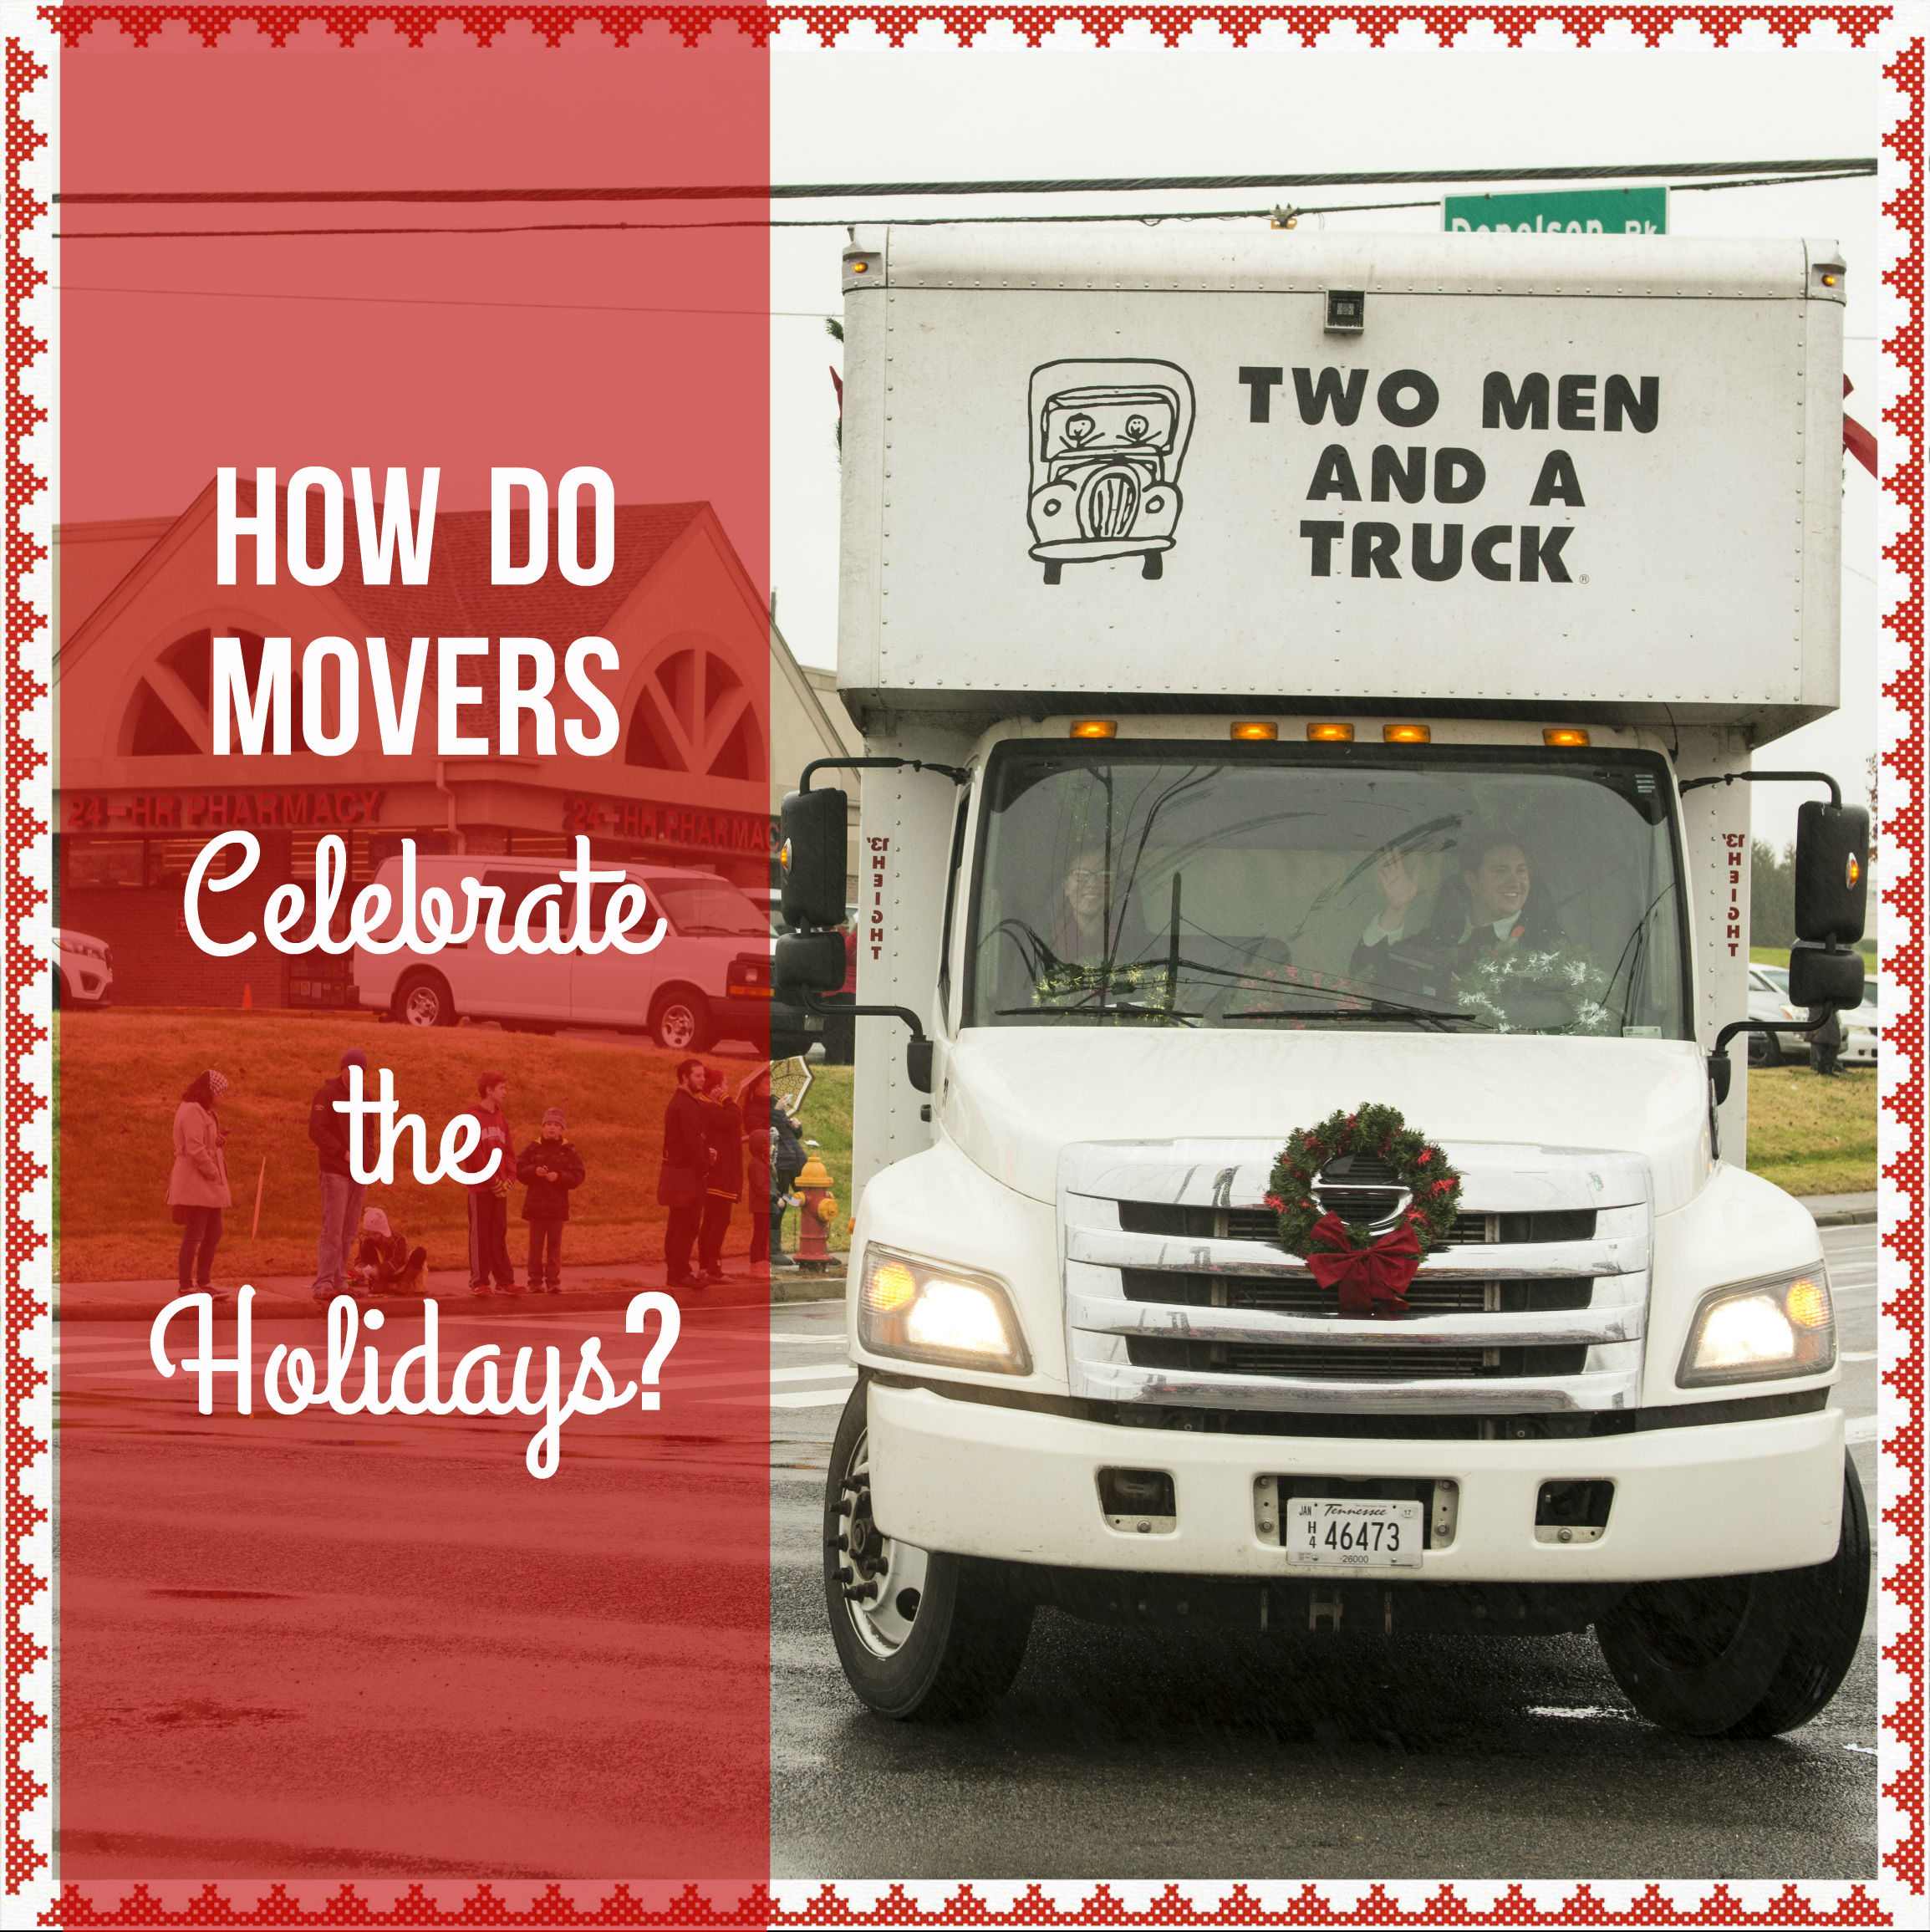 How the staff at TWO MEN AND A TRUCK Nashville will celebrate the holidays